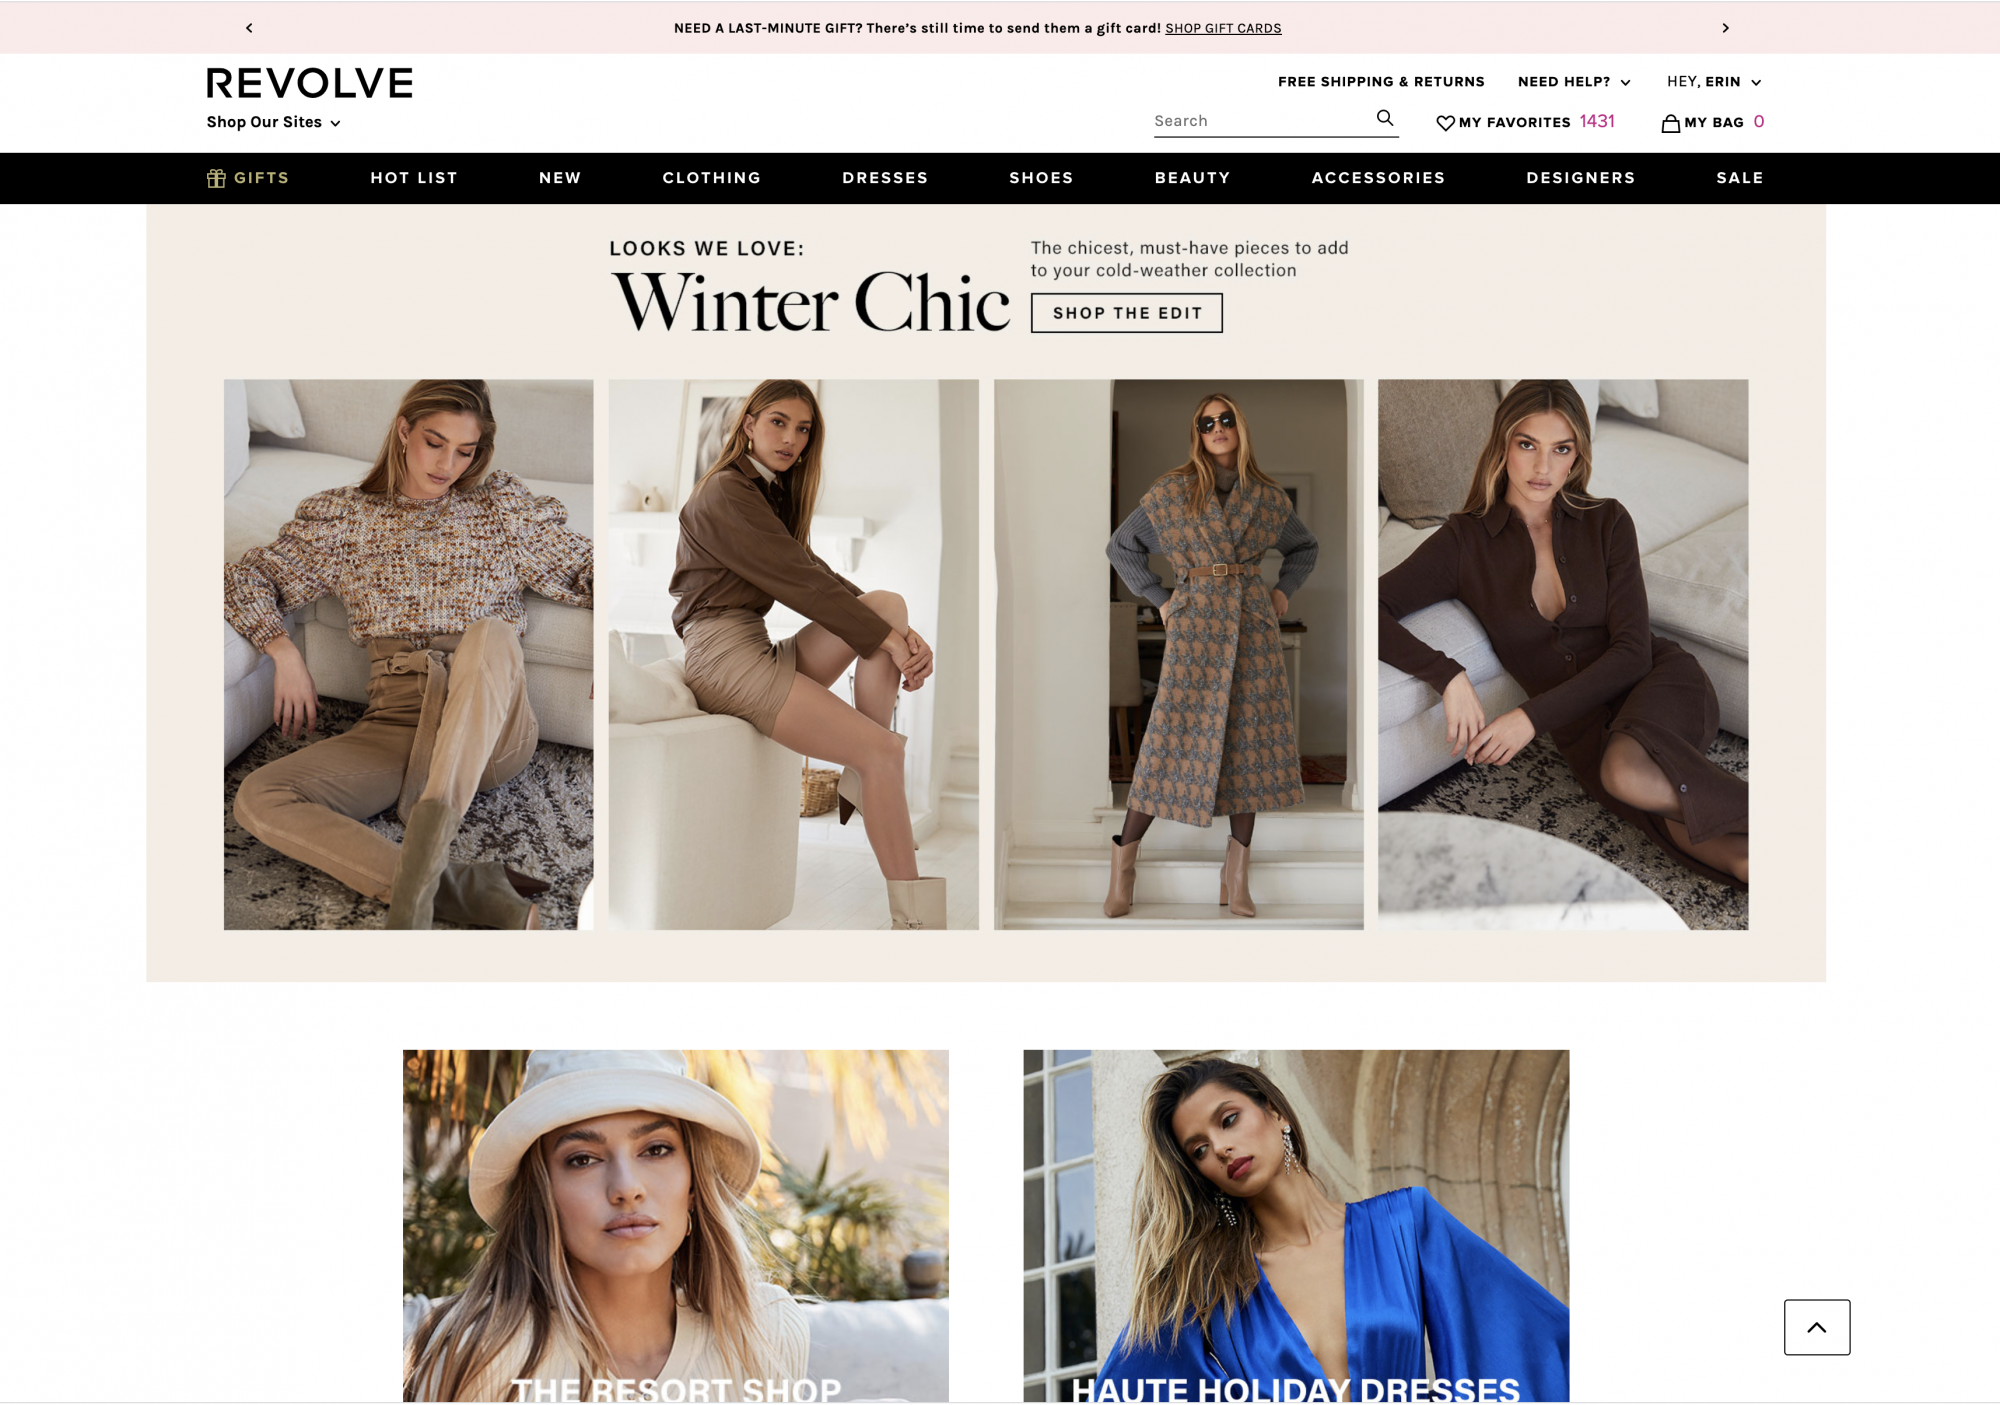 fashion over 40 and where women over 40 should shop from a shopping expert featuring Revolve